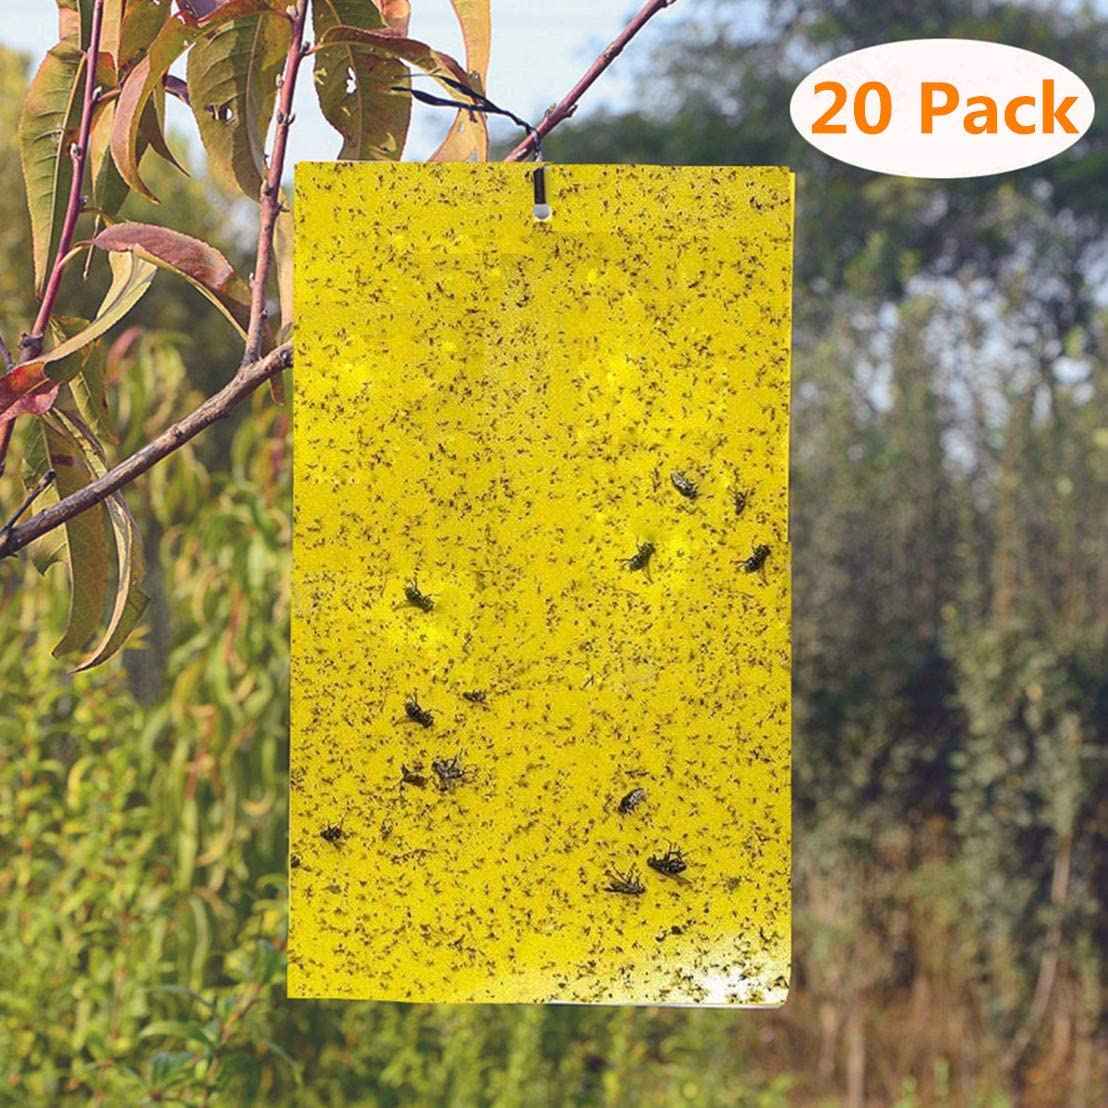 Whiteflies 6X8 Inches, 20pcs Twist Ties Included Flying Aphid Leaf Miners Other Flying Plant Insects LUTER 20-Pack Dual-Sided Yellow Sticky Traps for Flying Plant Insect Like Fungus Gnats